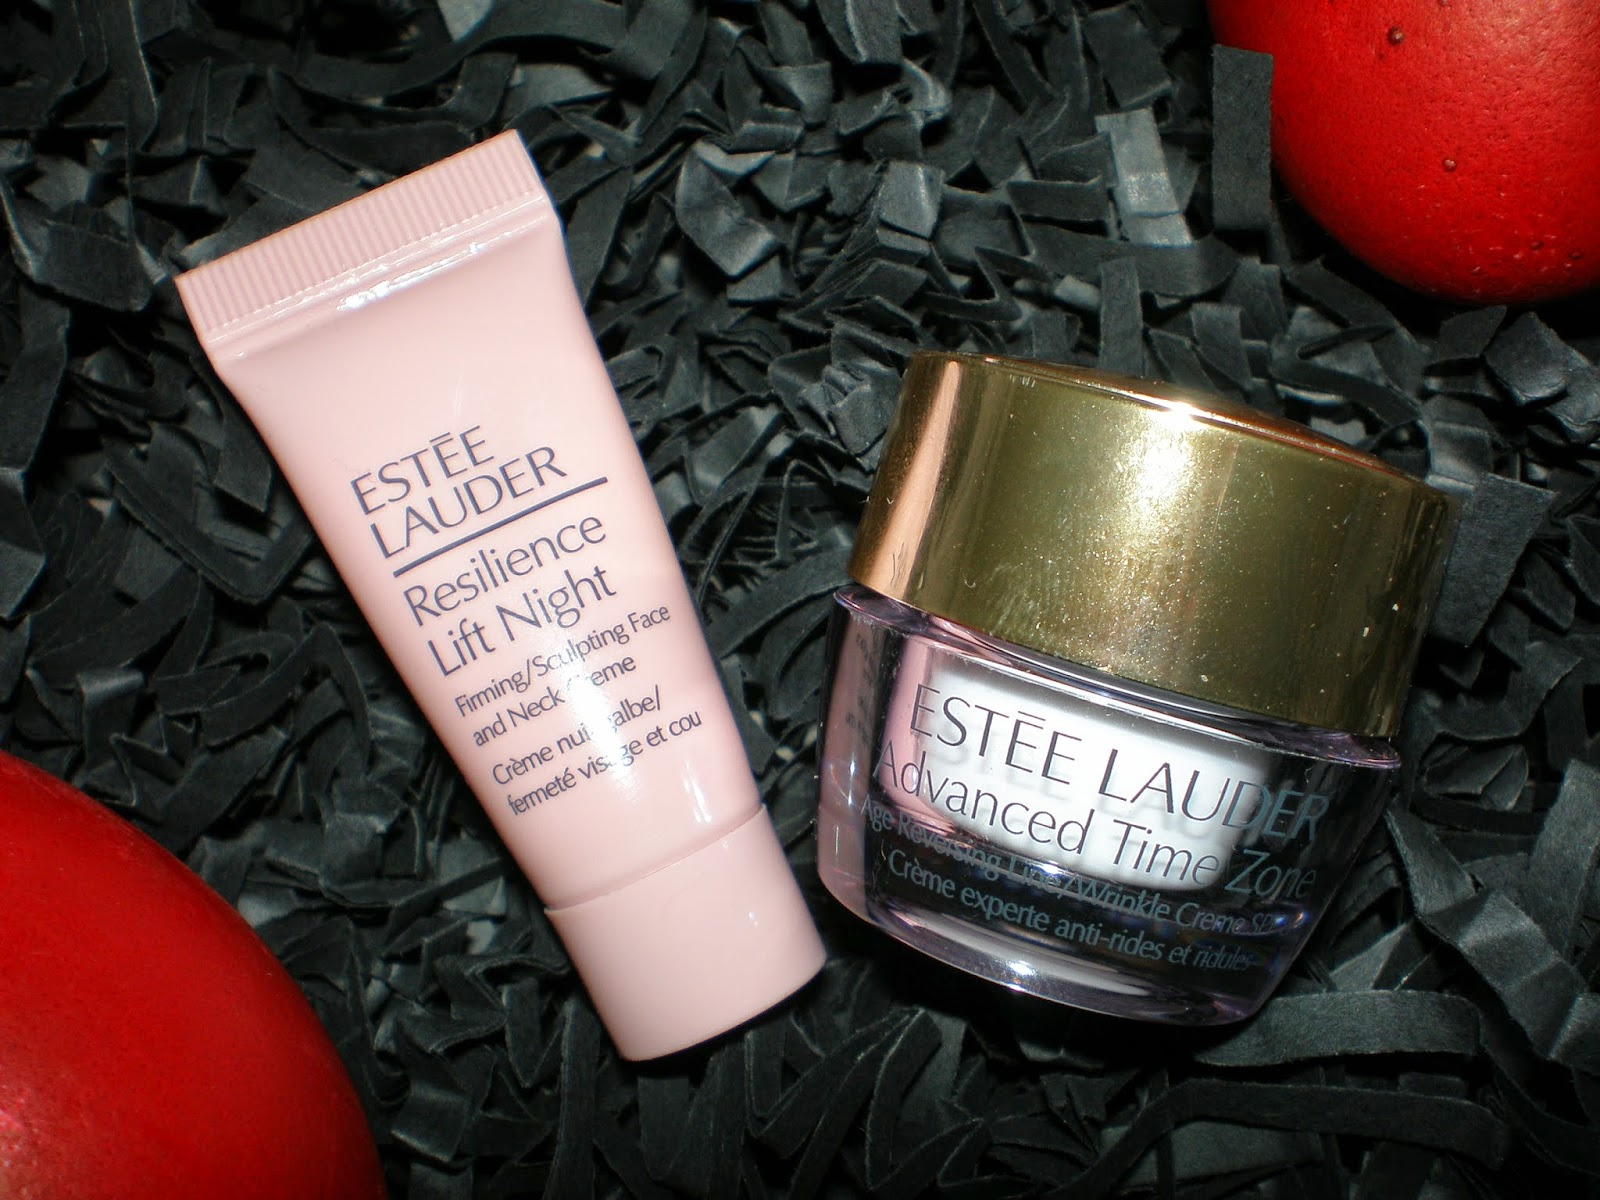 Estee Lauder Advanced Time Zone Age Reversing Line/Wrinkle cream and      Estee Lauder Resilience Lift Night Firming/Sculpting Face and Neck cream